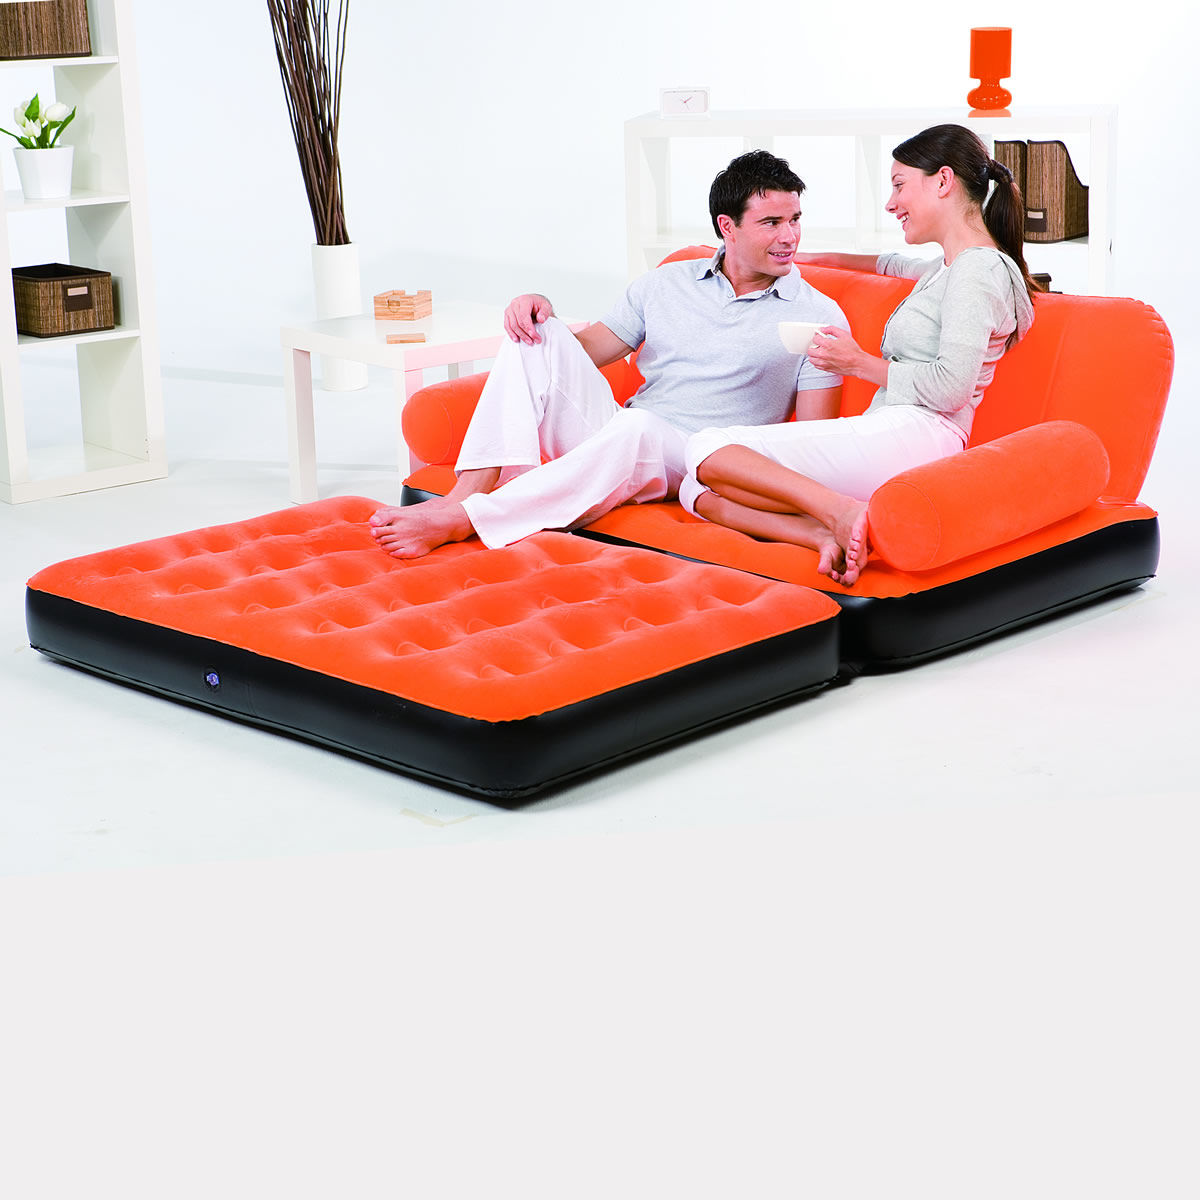 stylish blow up sofa bed construction-Wonderful Blow Up sofa Bed Online